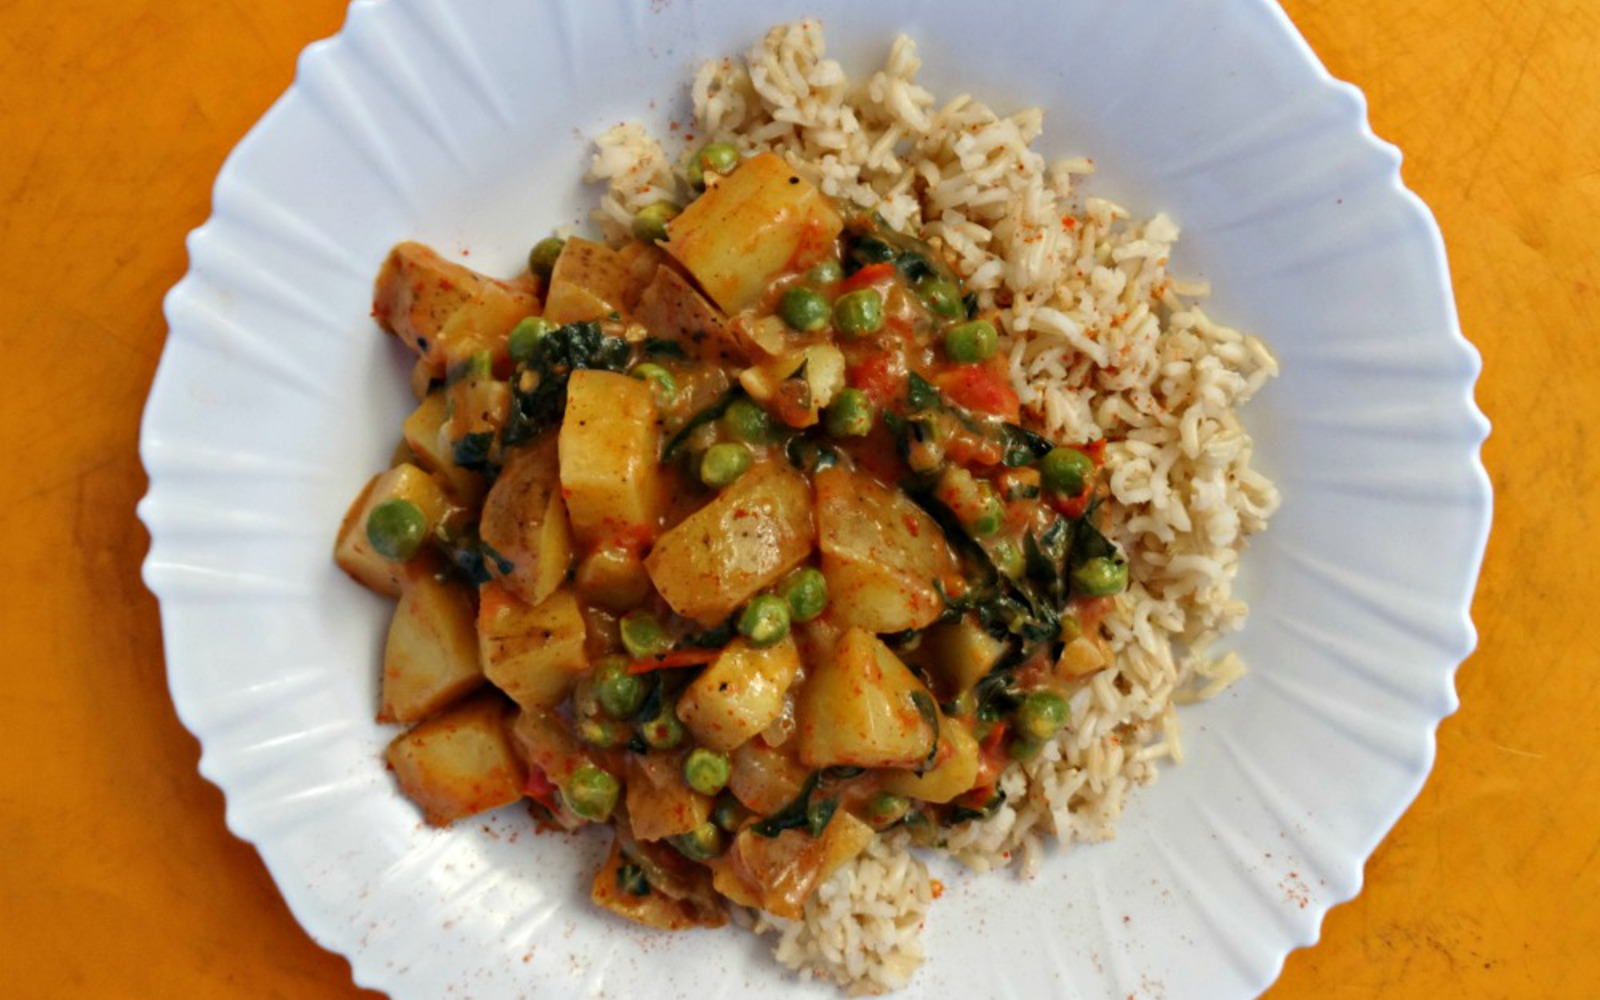 Vegan Nourishing Potato Curry With Kale, peas, and a side of rice